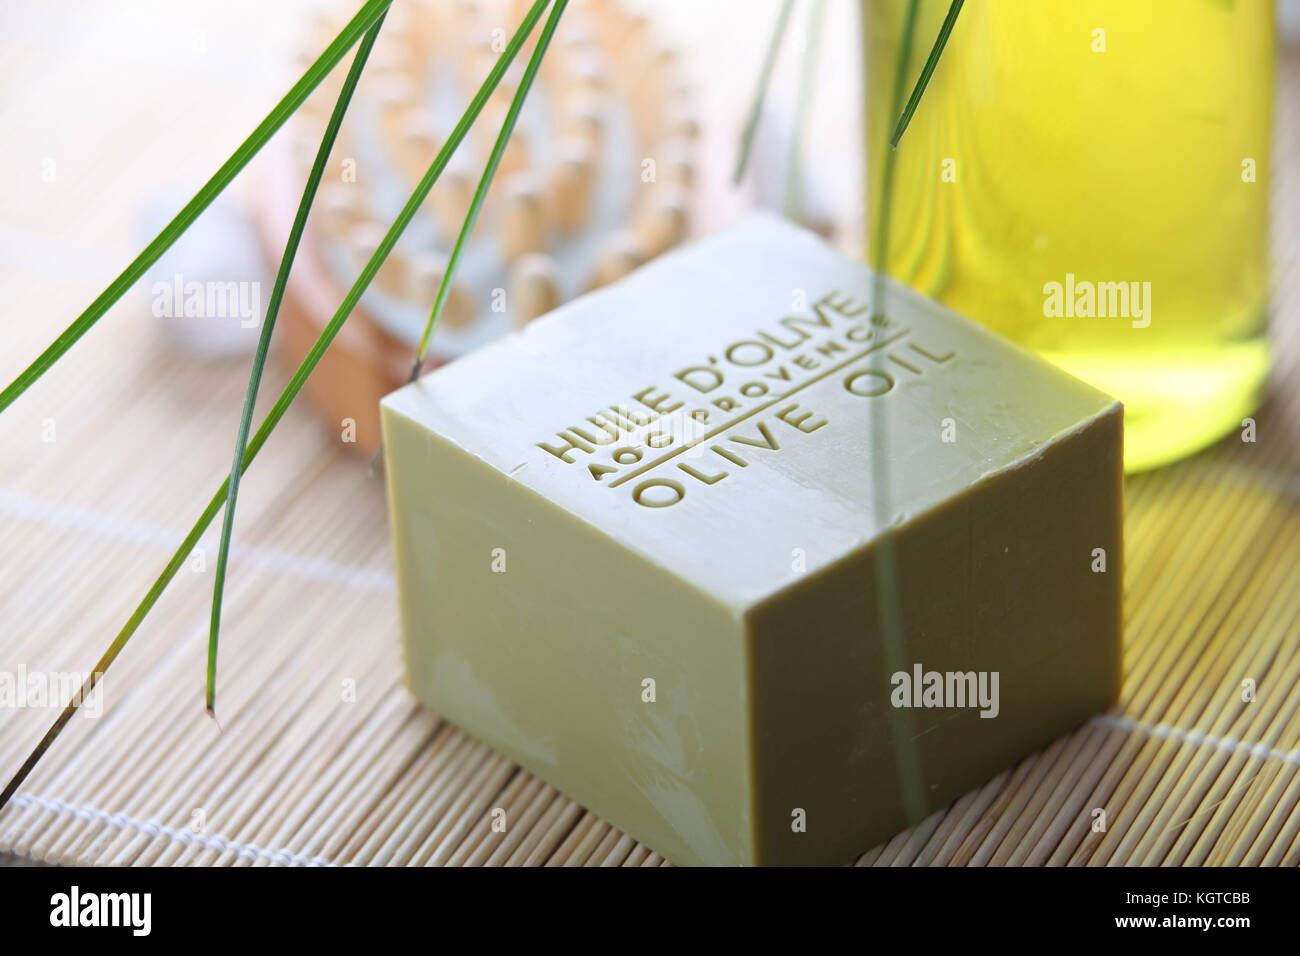 Closeup of olive oil soap bar Stock Photo